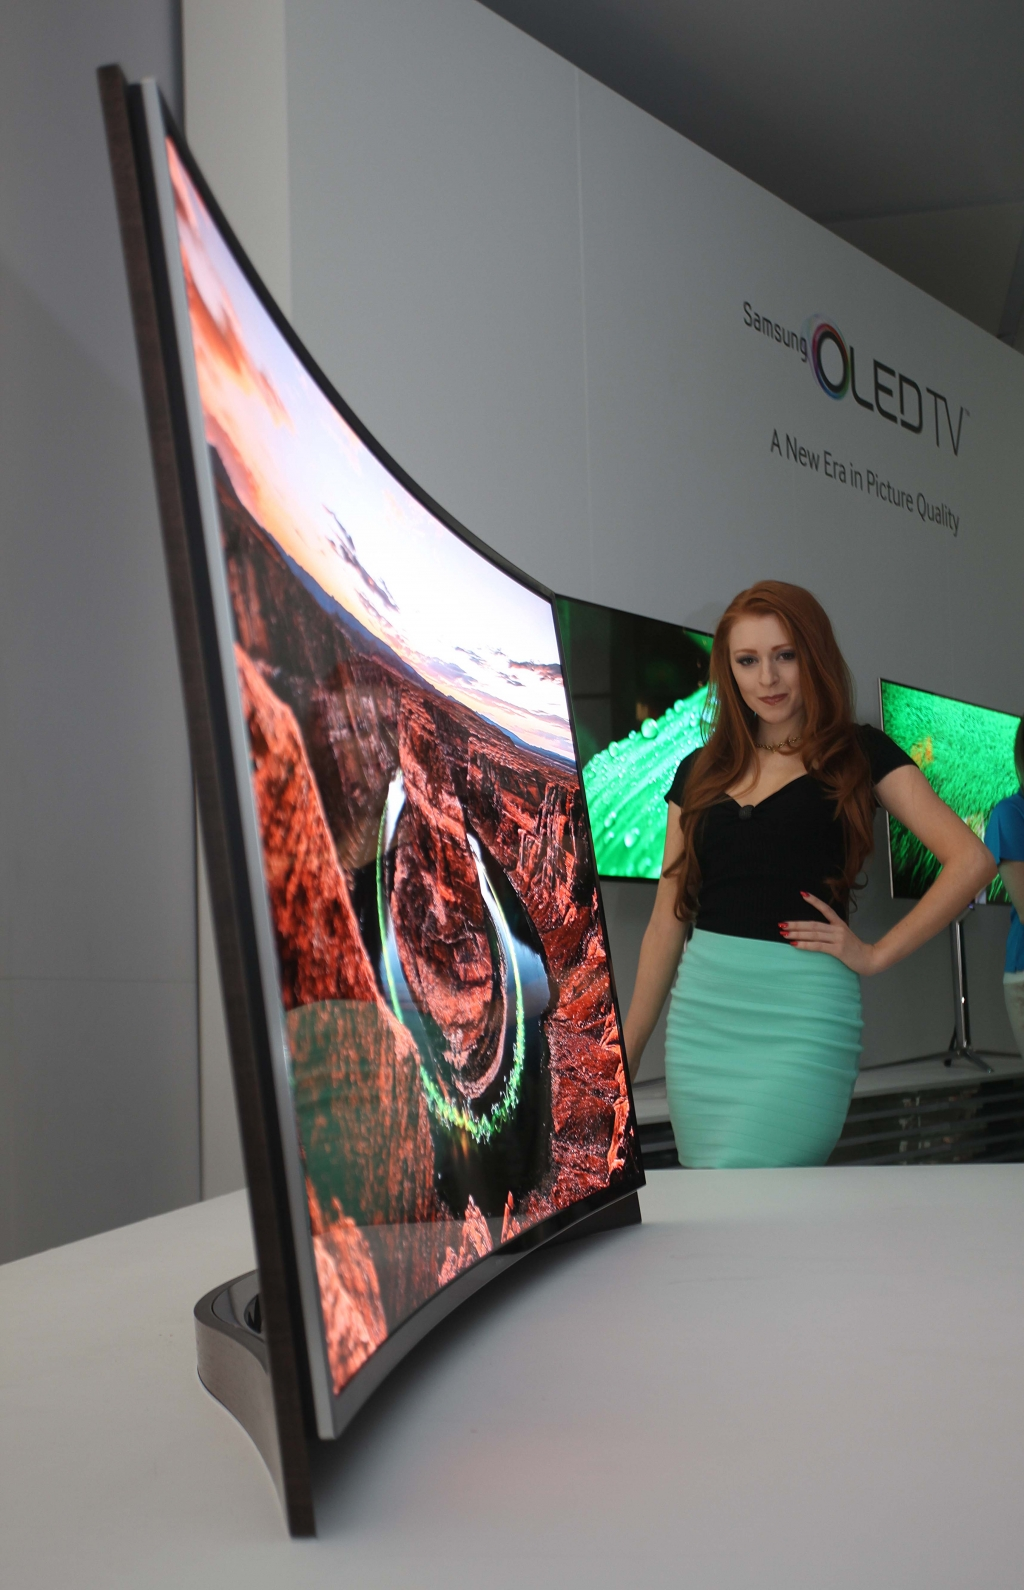 Samsung Introduces World's First Curved OLED TV at CES 2013